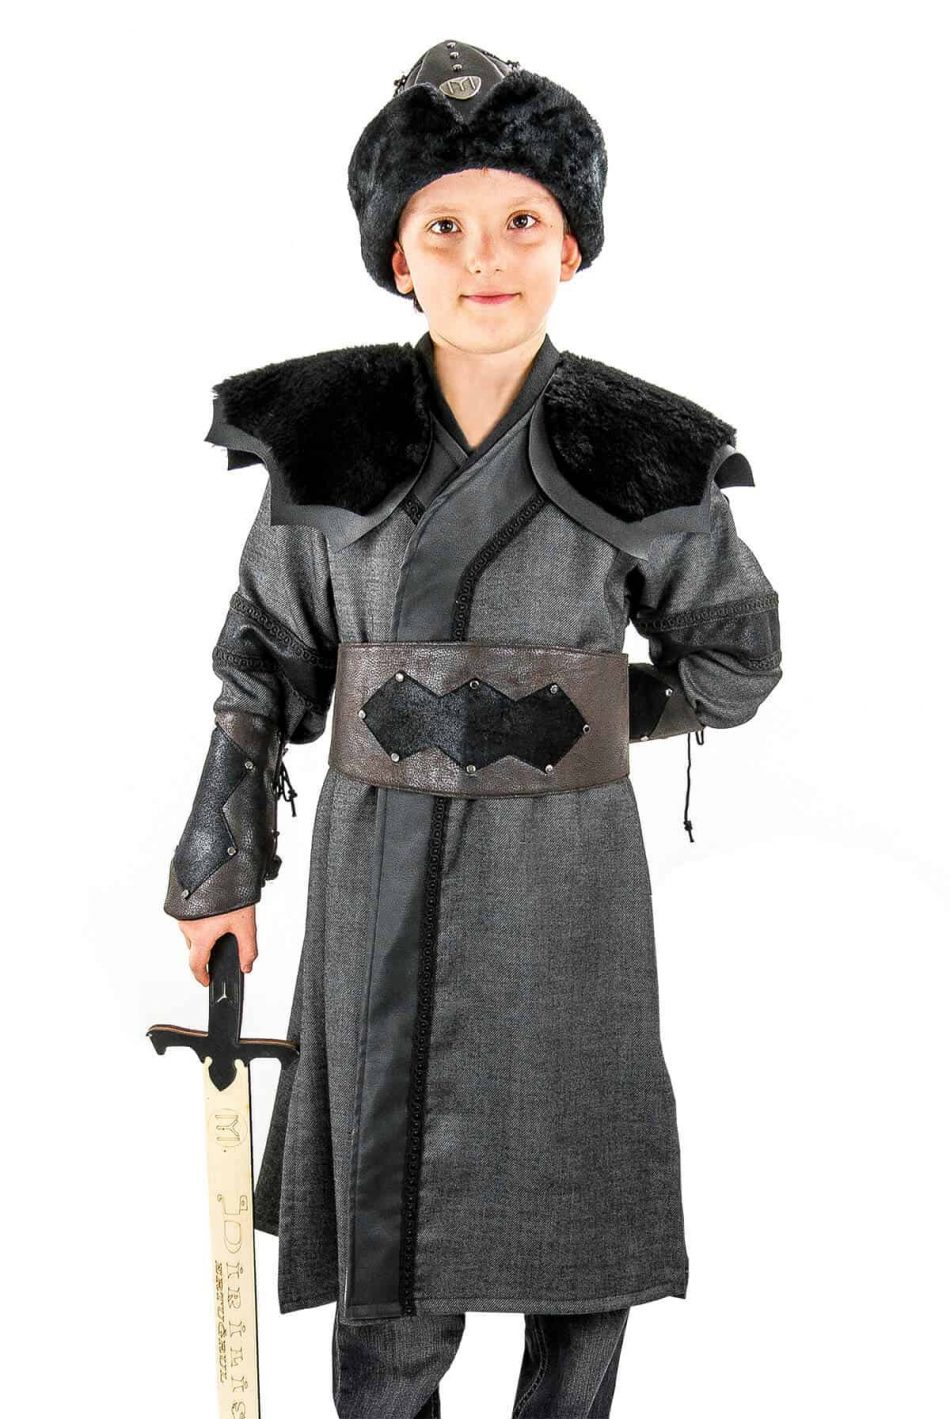 Resurrection Ertugrul Costume Alp Outfit For Children DC 106 04 950x1419 - Ertugrul Costume Alp Outfit For Children